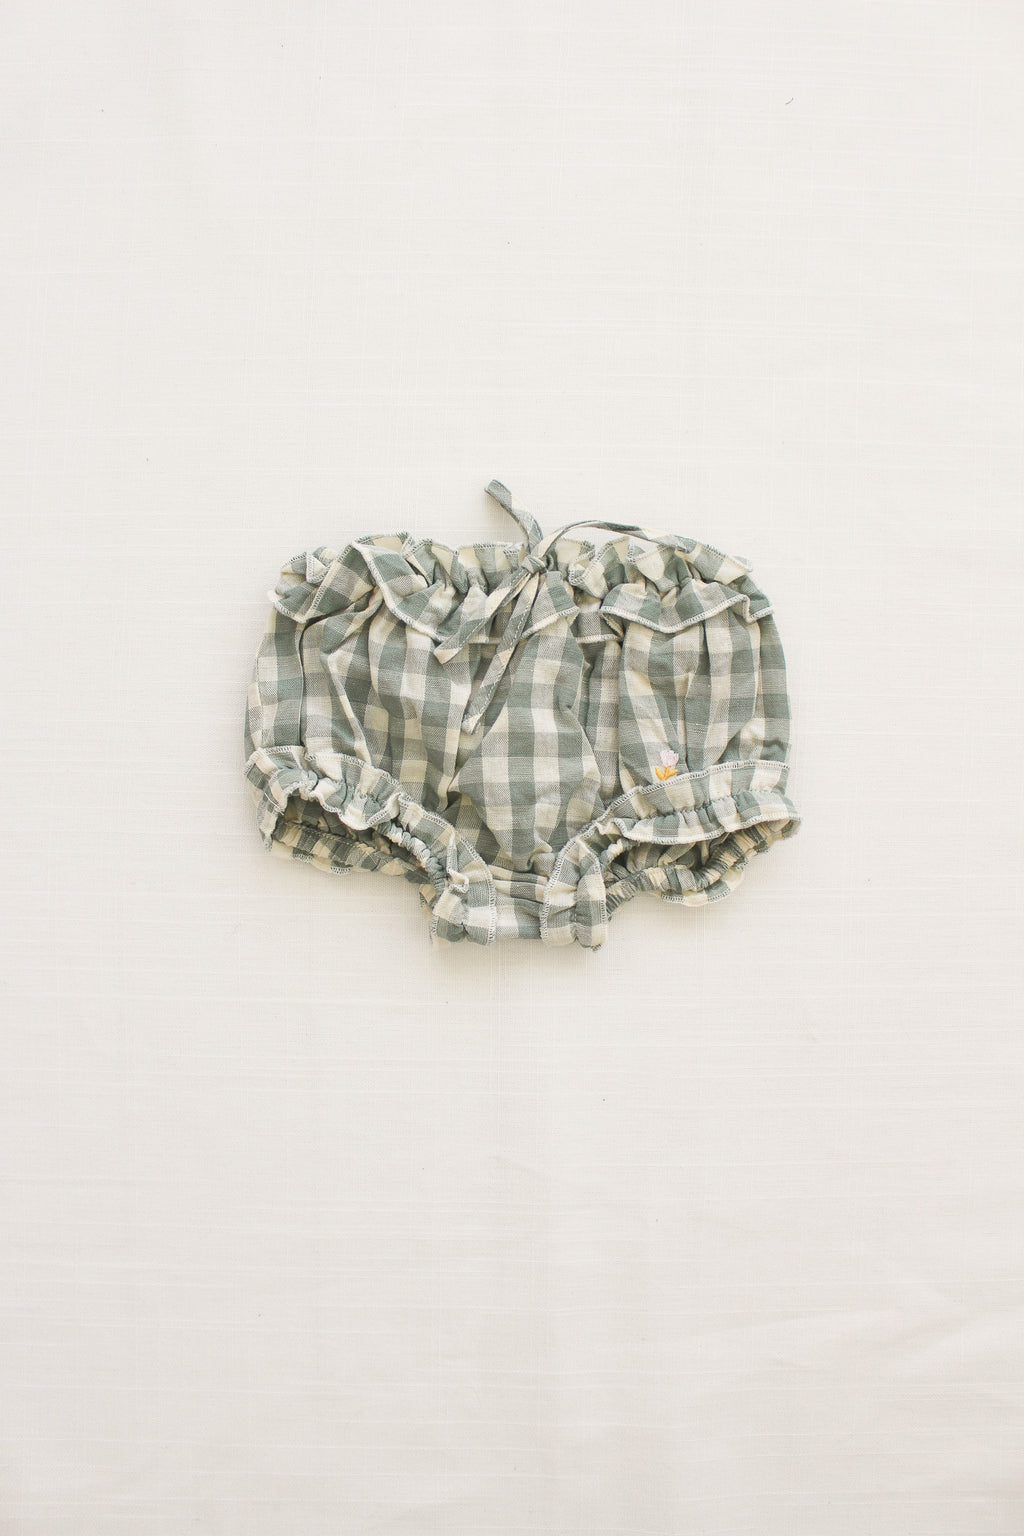 Fin and Vince - Picnic Bloomer (Pistachio Gingham) - Last 3/6